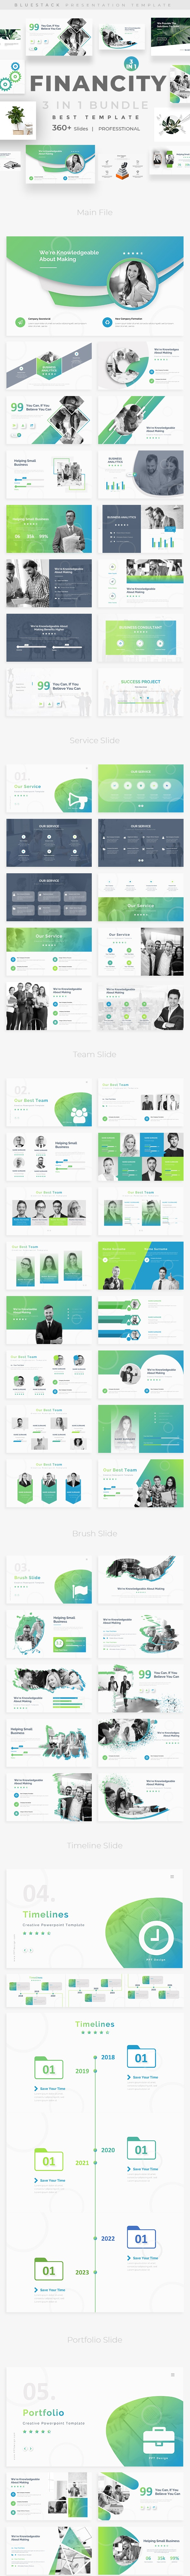 Financity 3 in 1 Bundle Powerpoint Template - Creative PowerPoint Templates